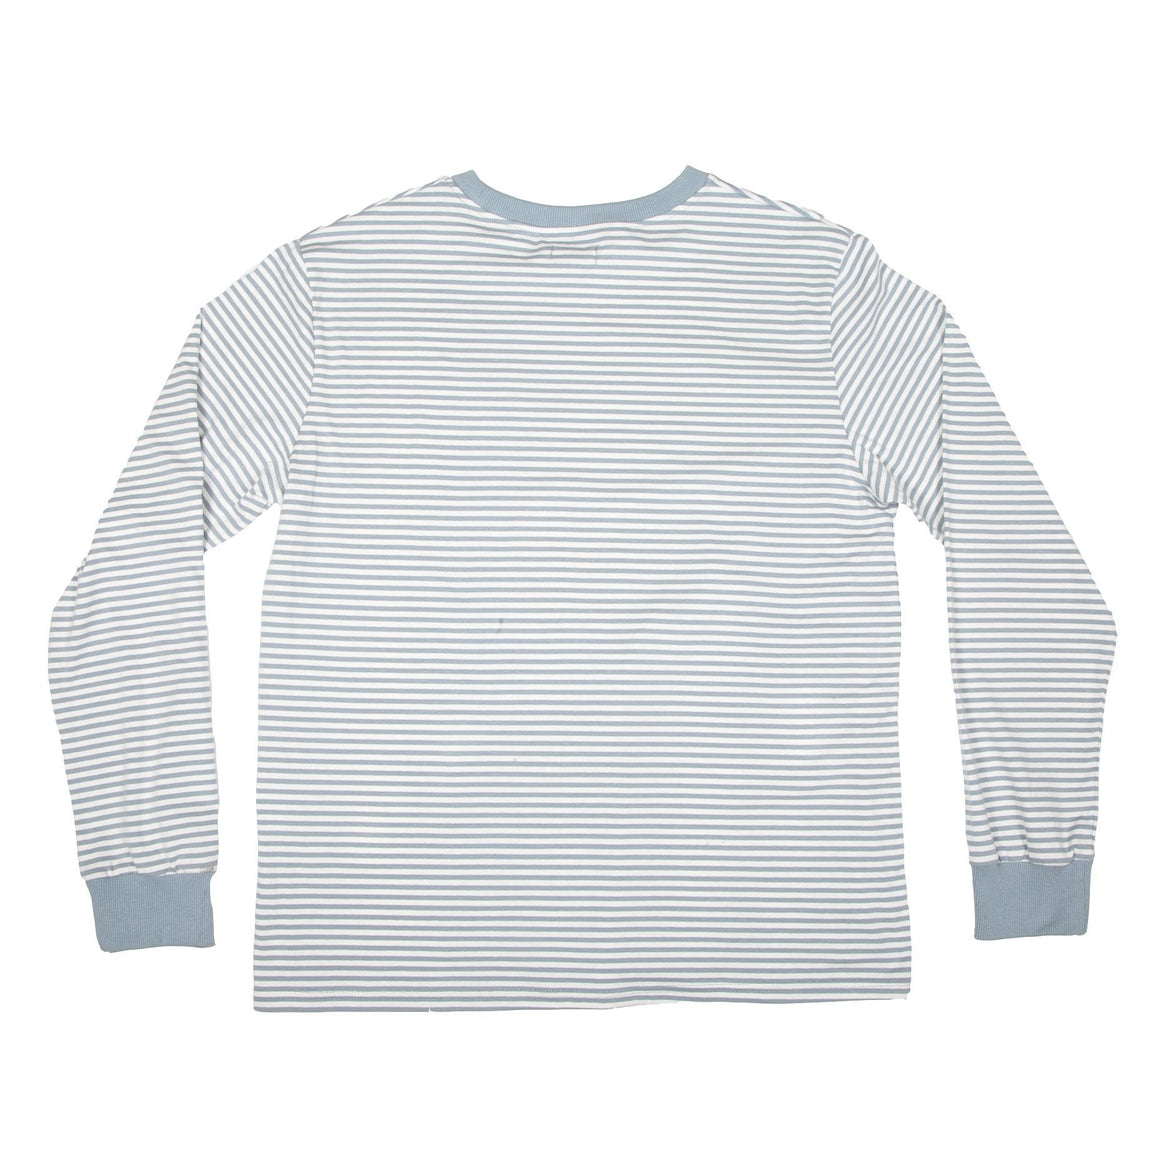 Stripe - Piccard Long Sleeve